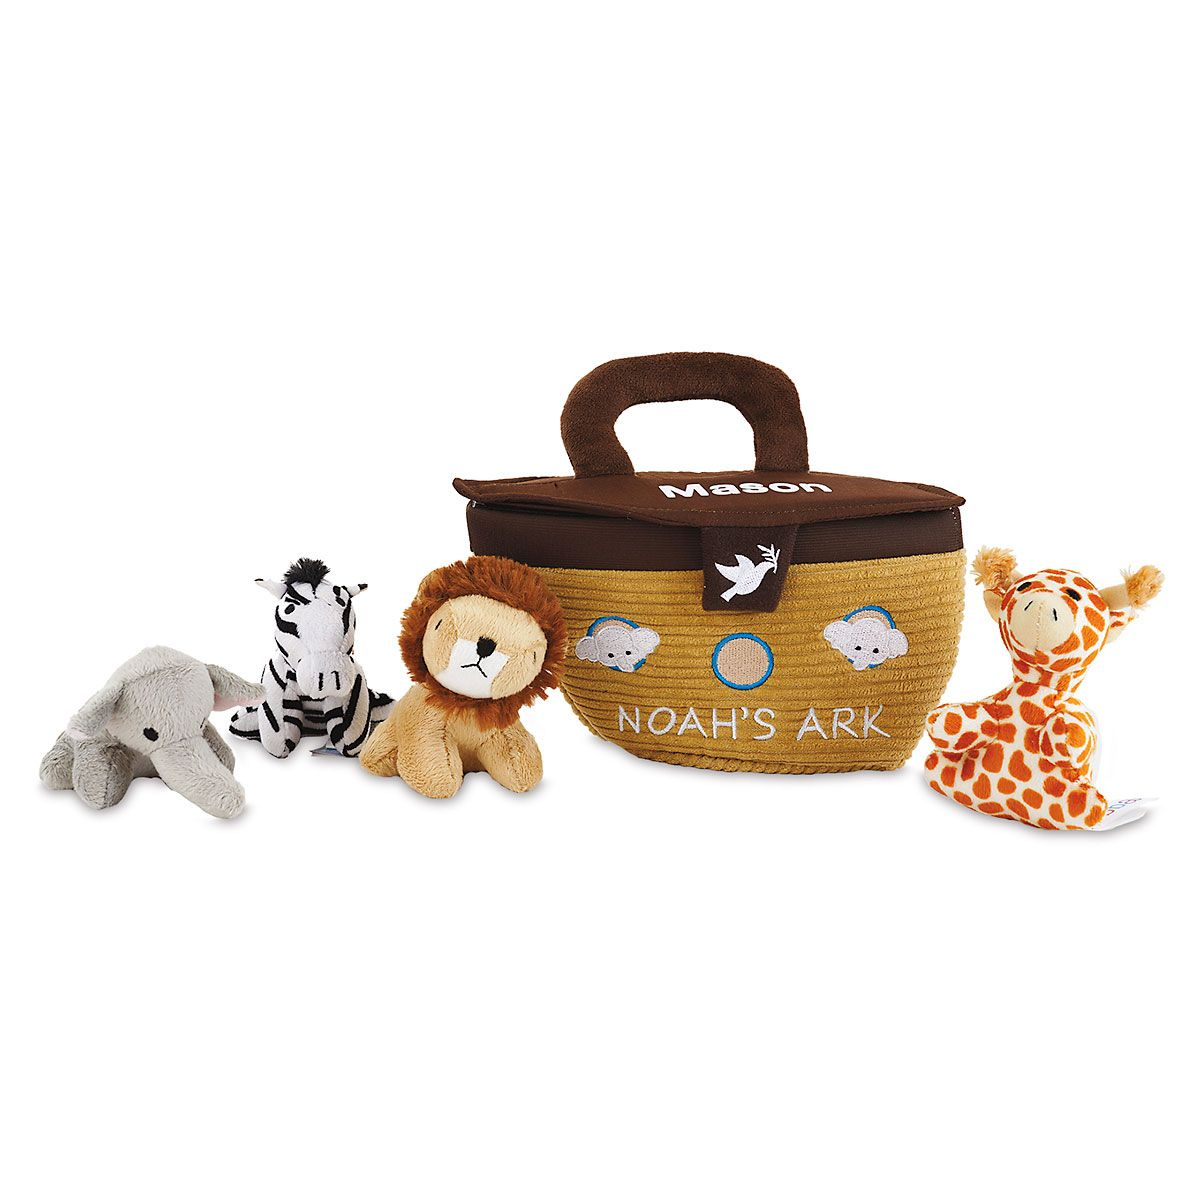 Noah's Ark Personalized Playset